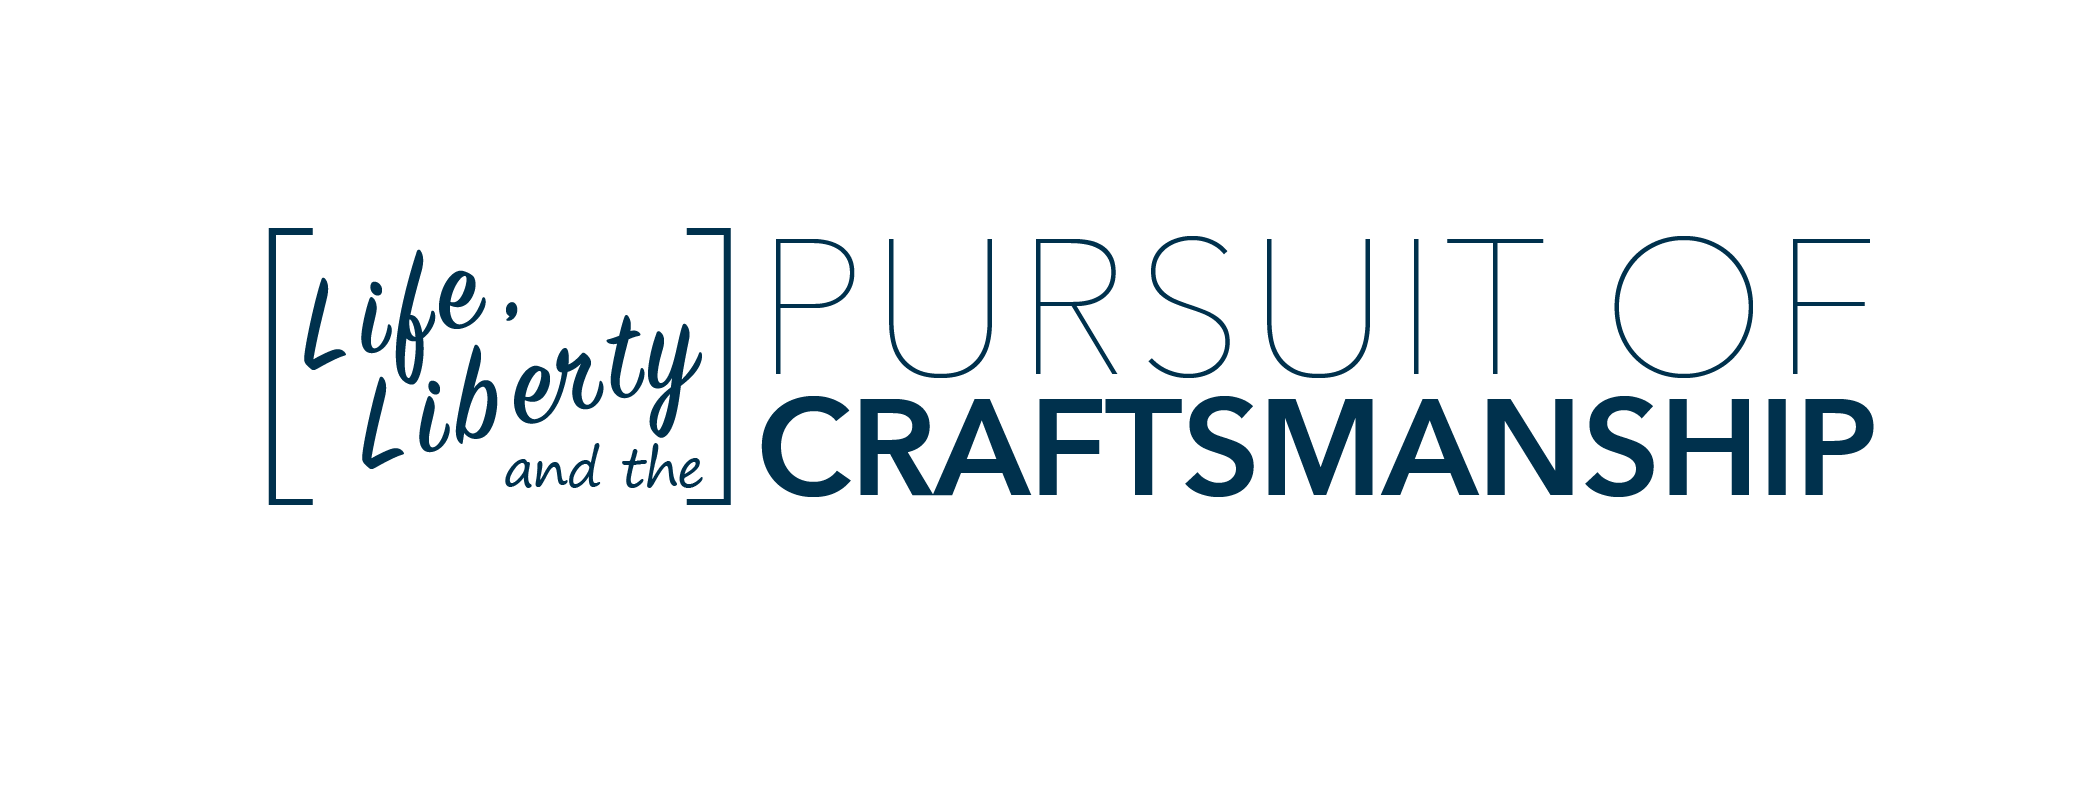 Pursuit of Craftsmanship